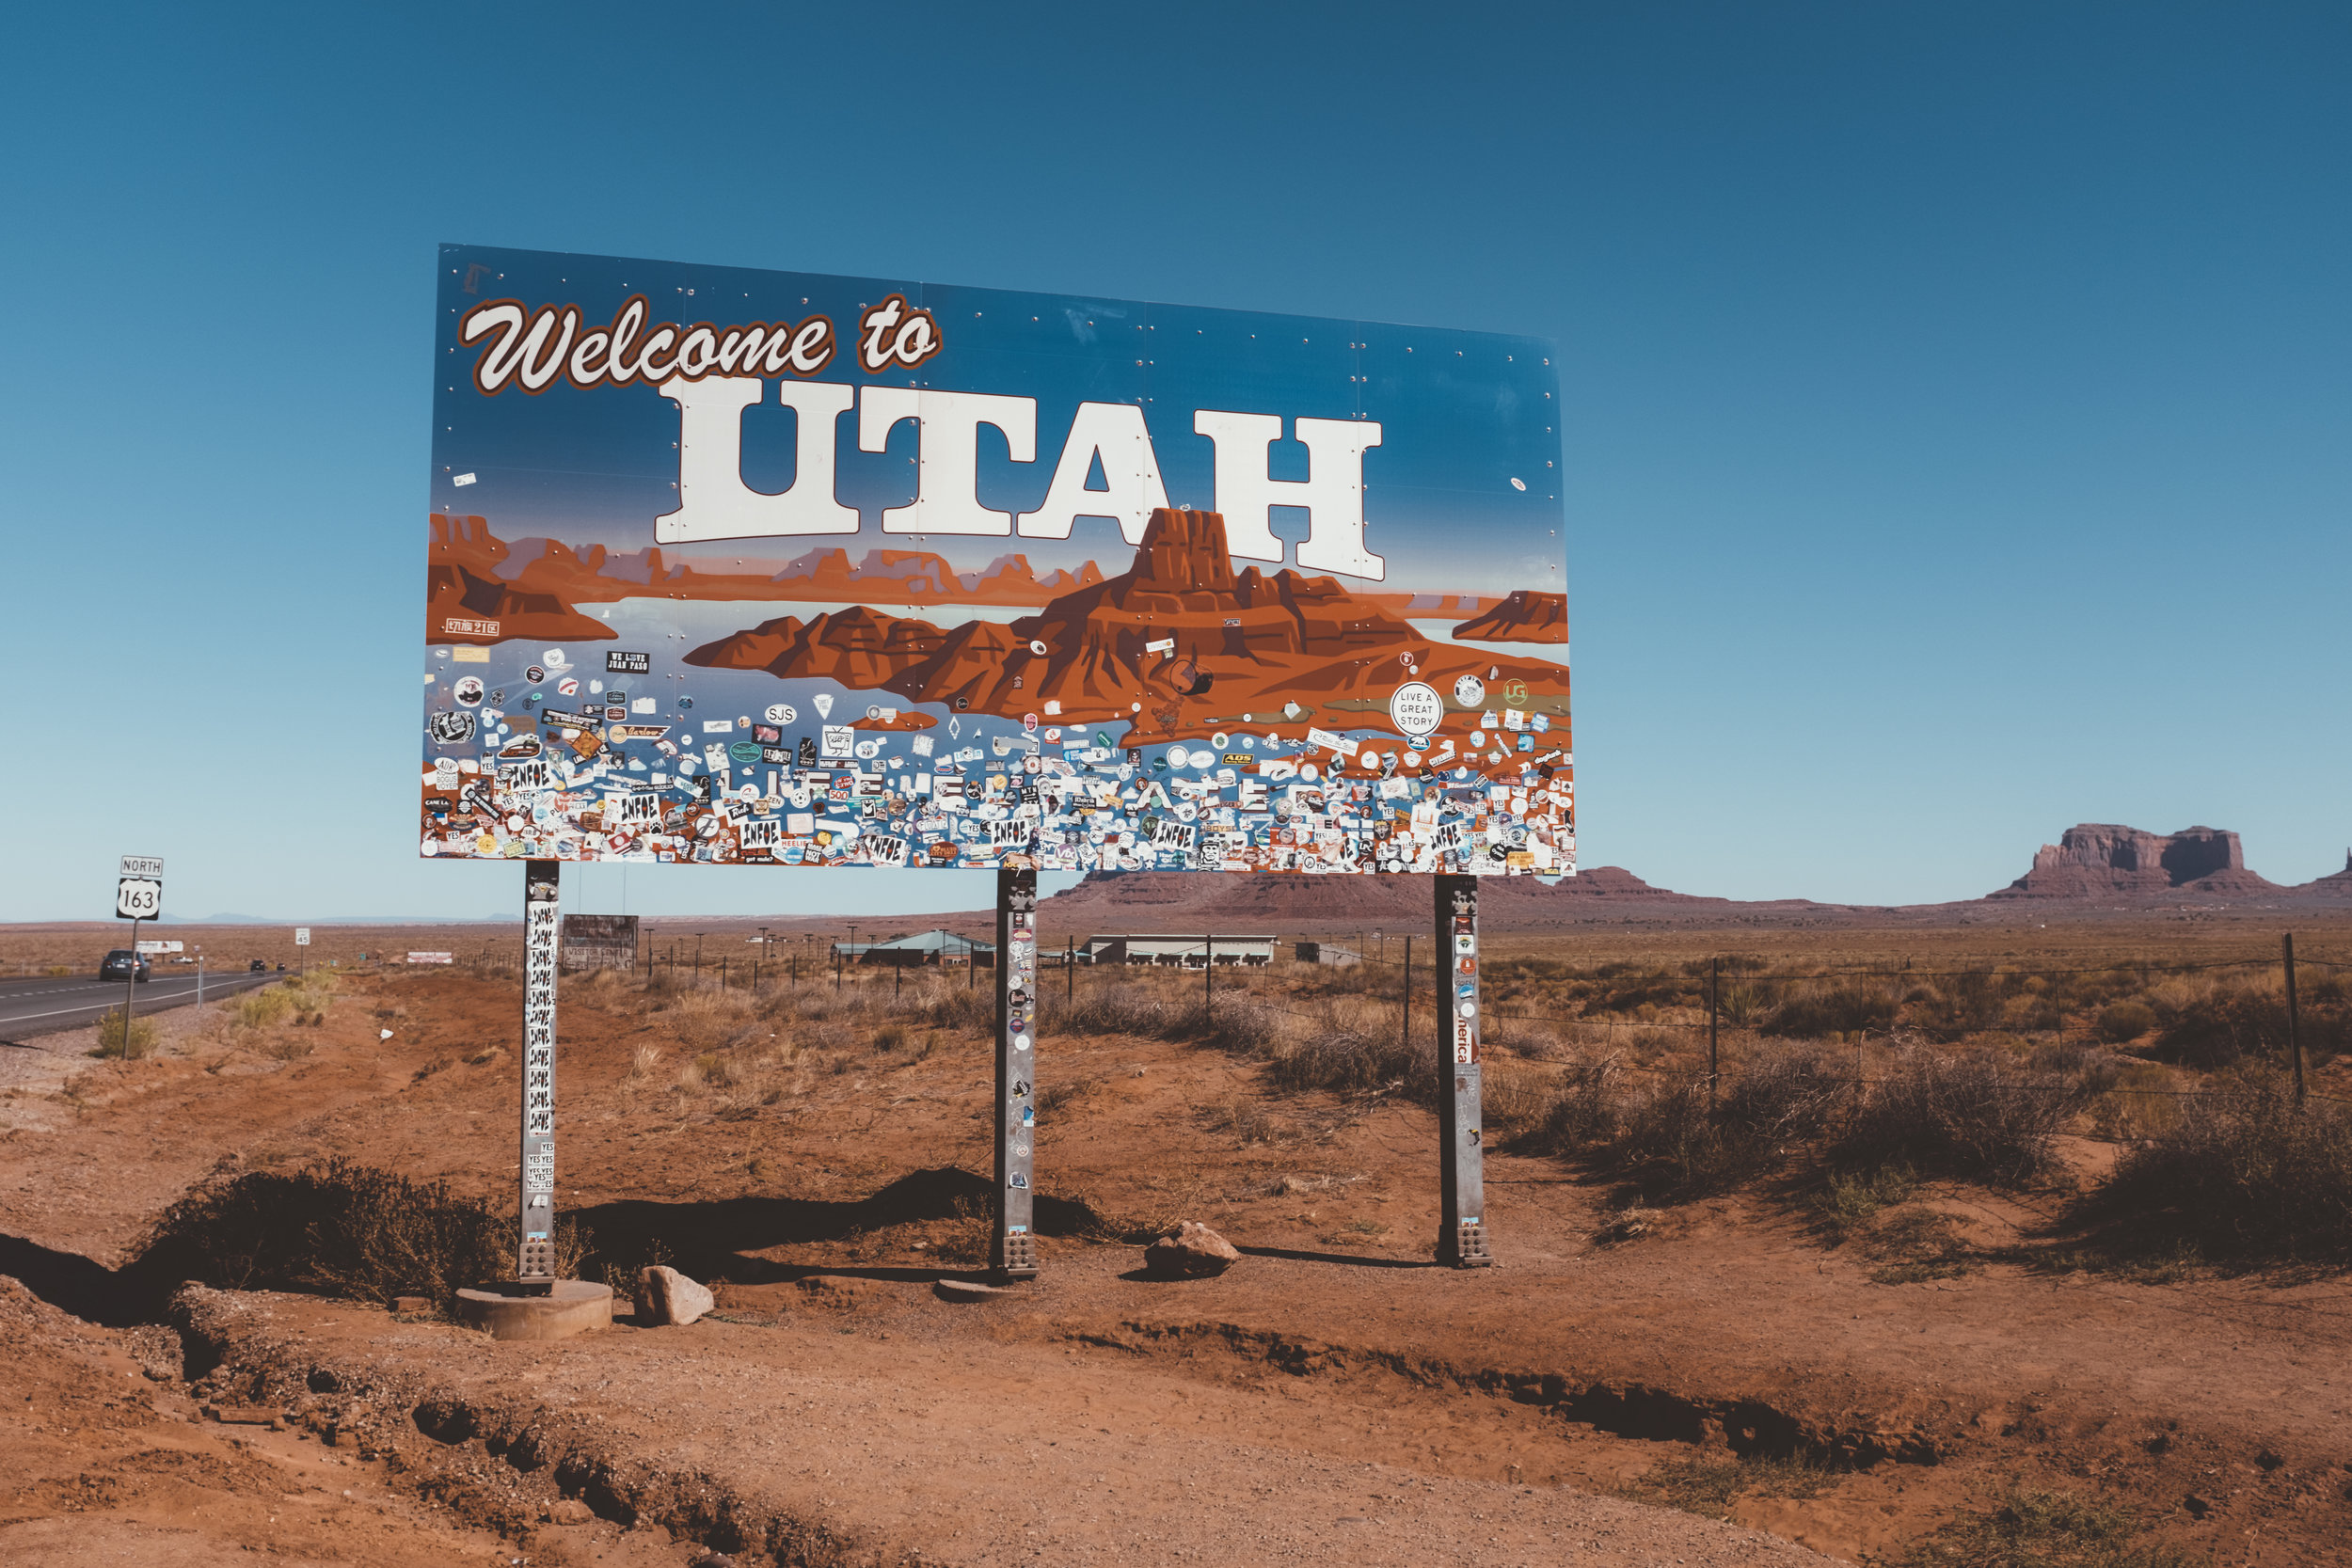 'Welcome to Utah' - on the border with Monument Valley